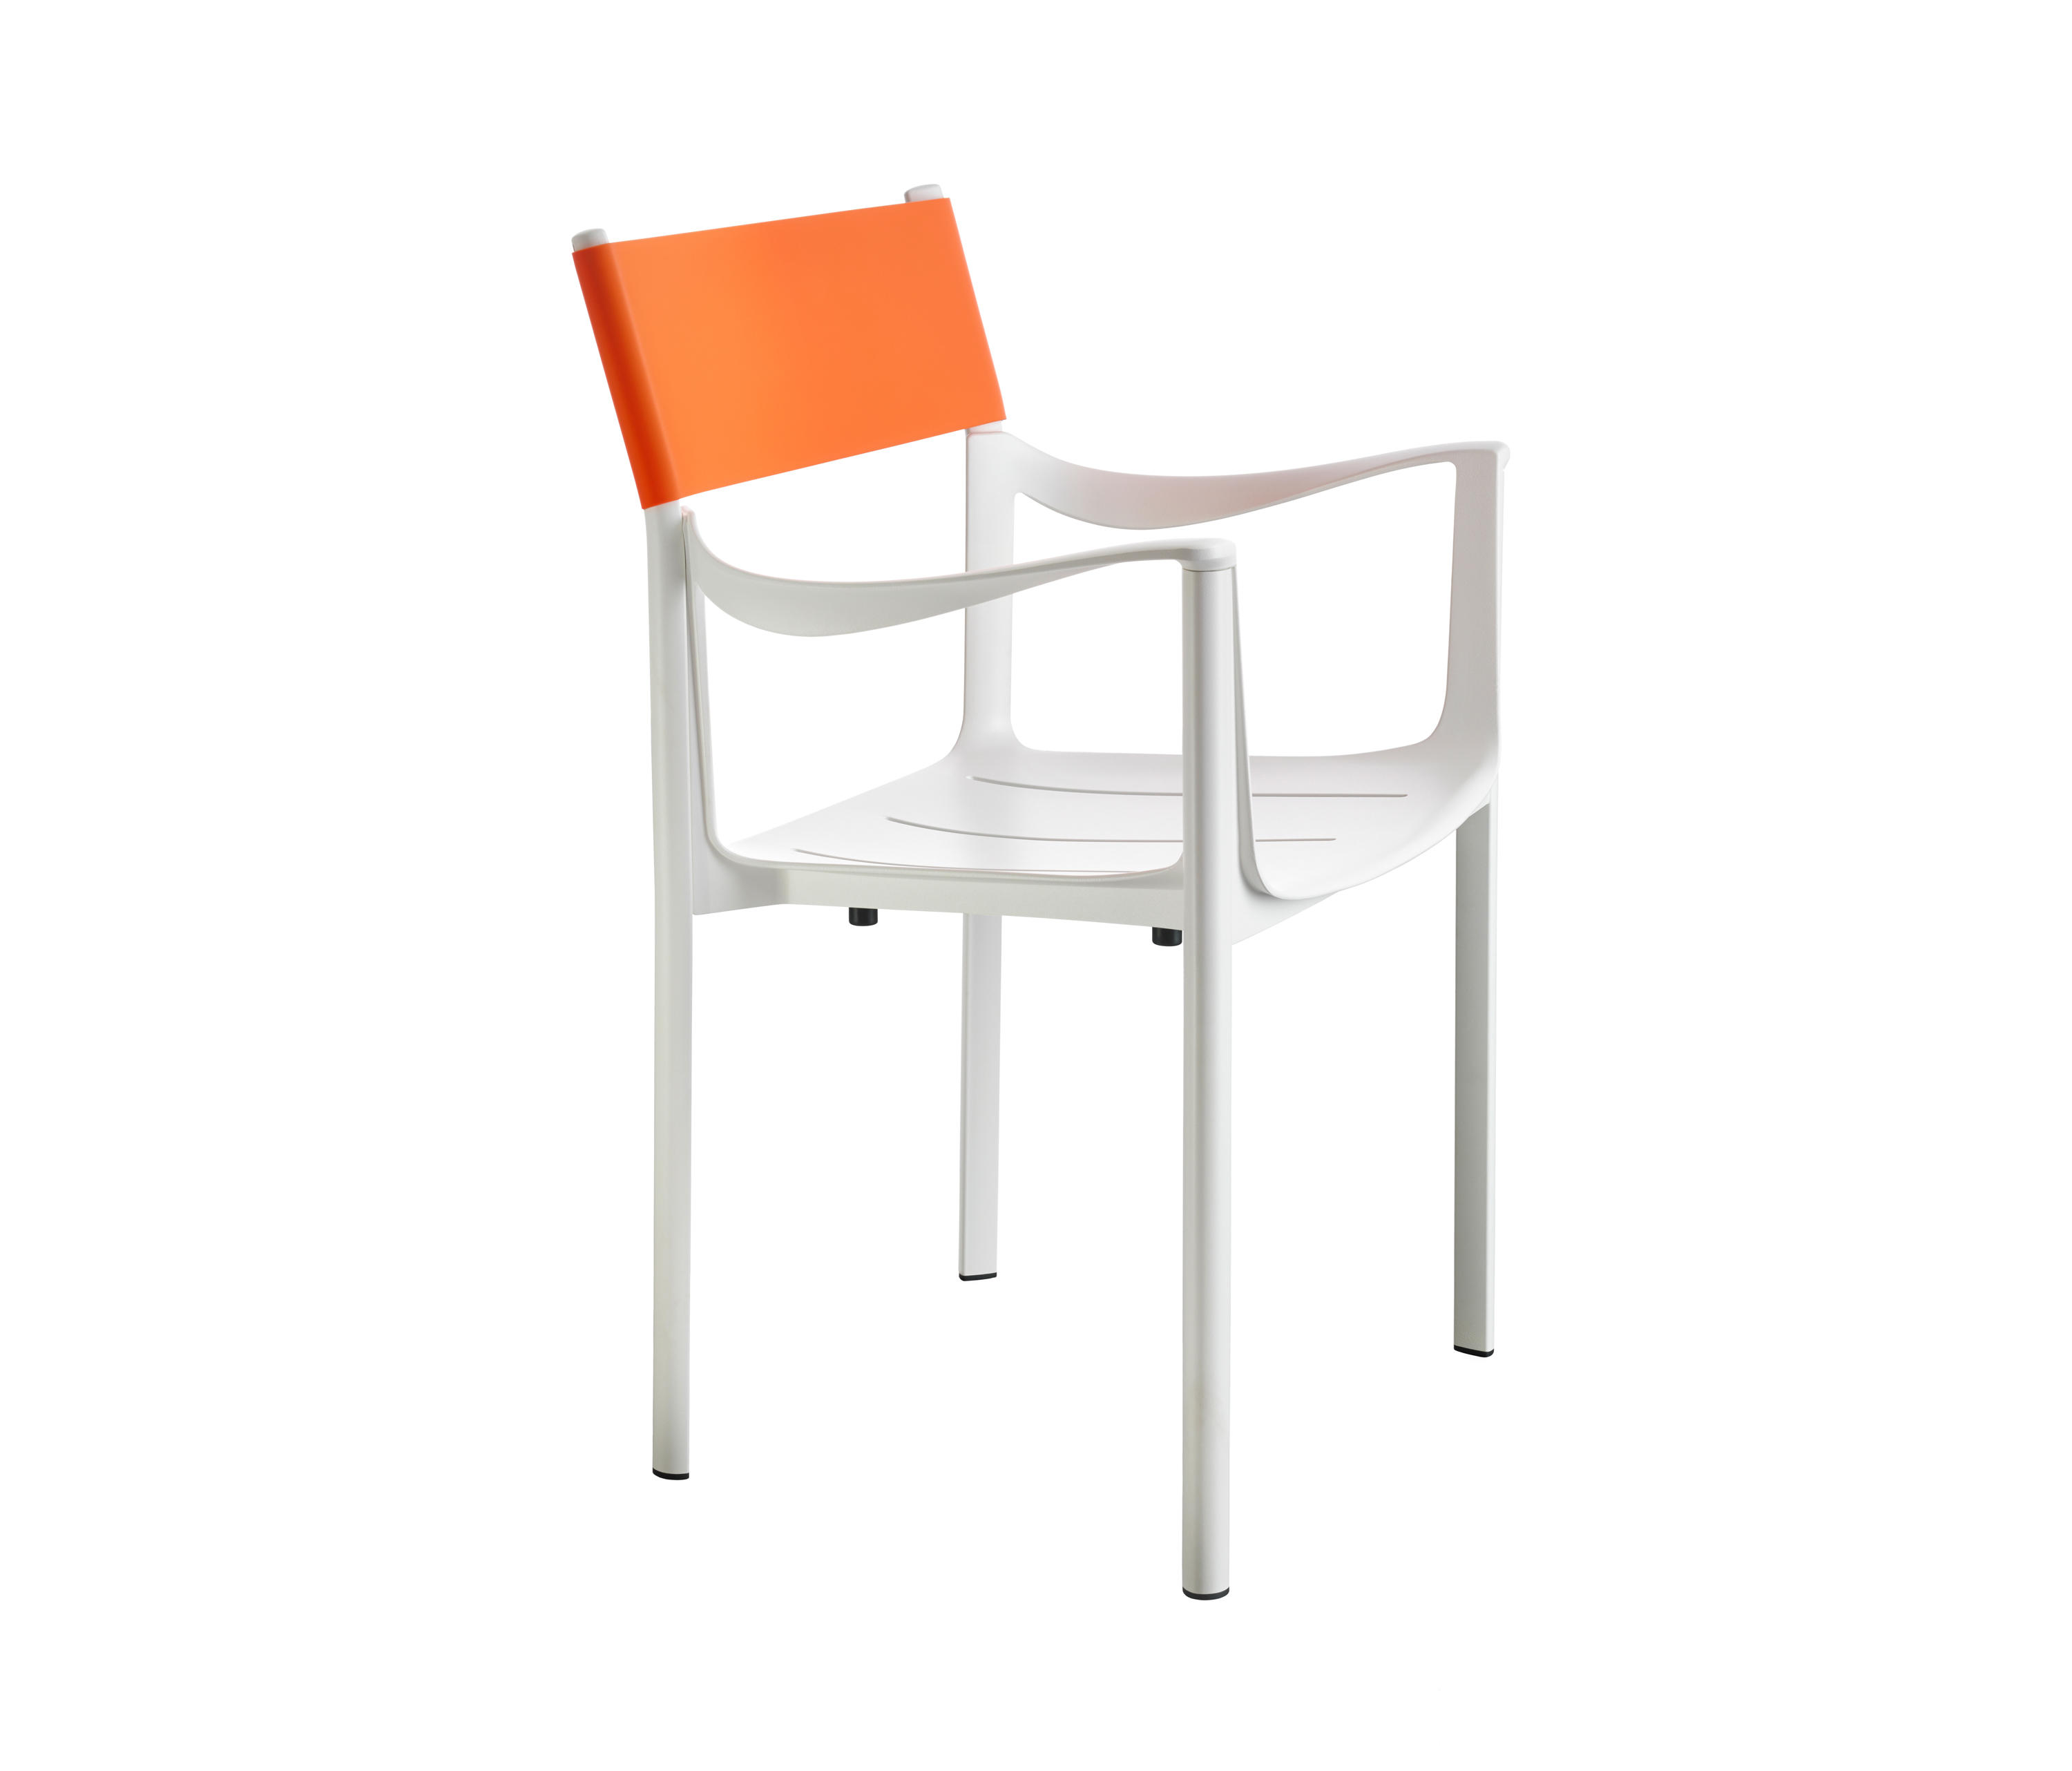 Venice chair chairs from magis architonic for Magis chair